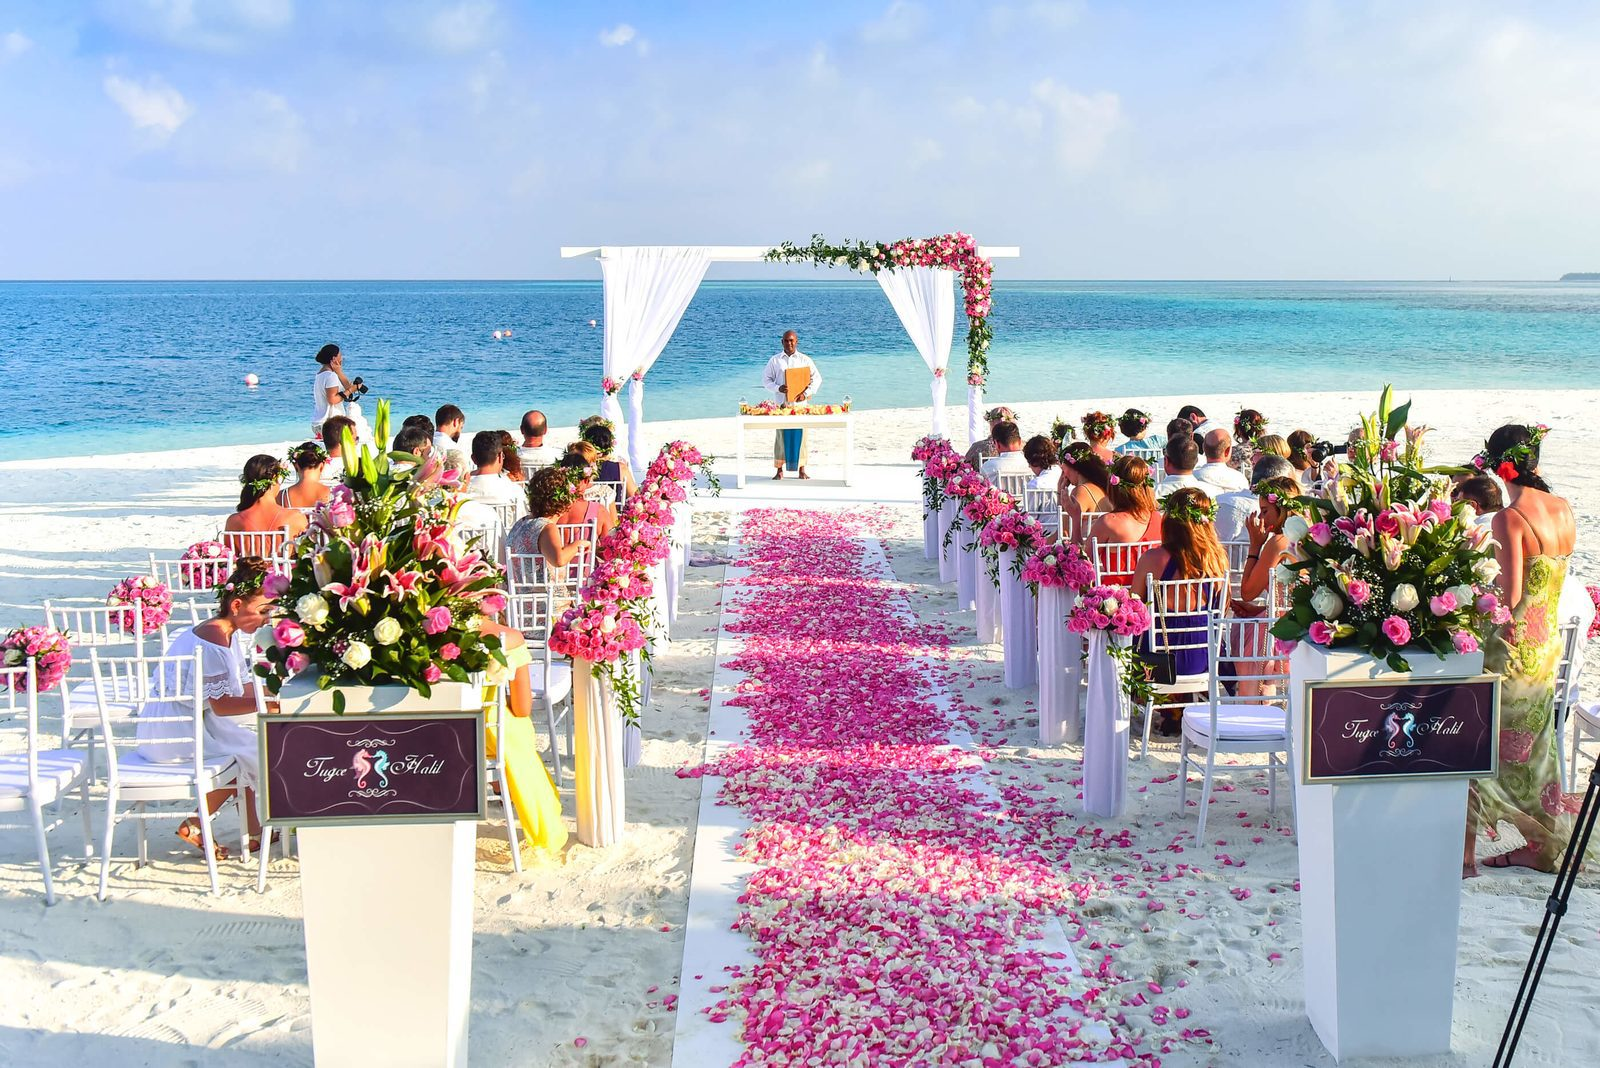 A Bonaire wedding is the dream of many couples! Who does not want to marry the love of their life on a beautiful and sunny island as Bonaire?